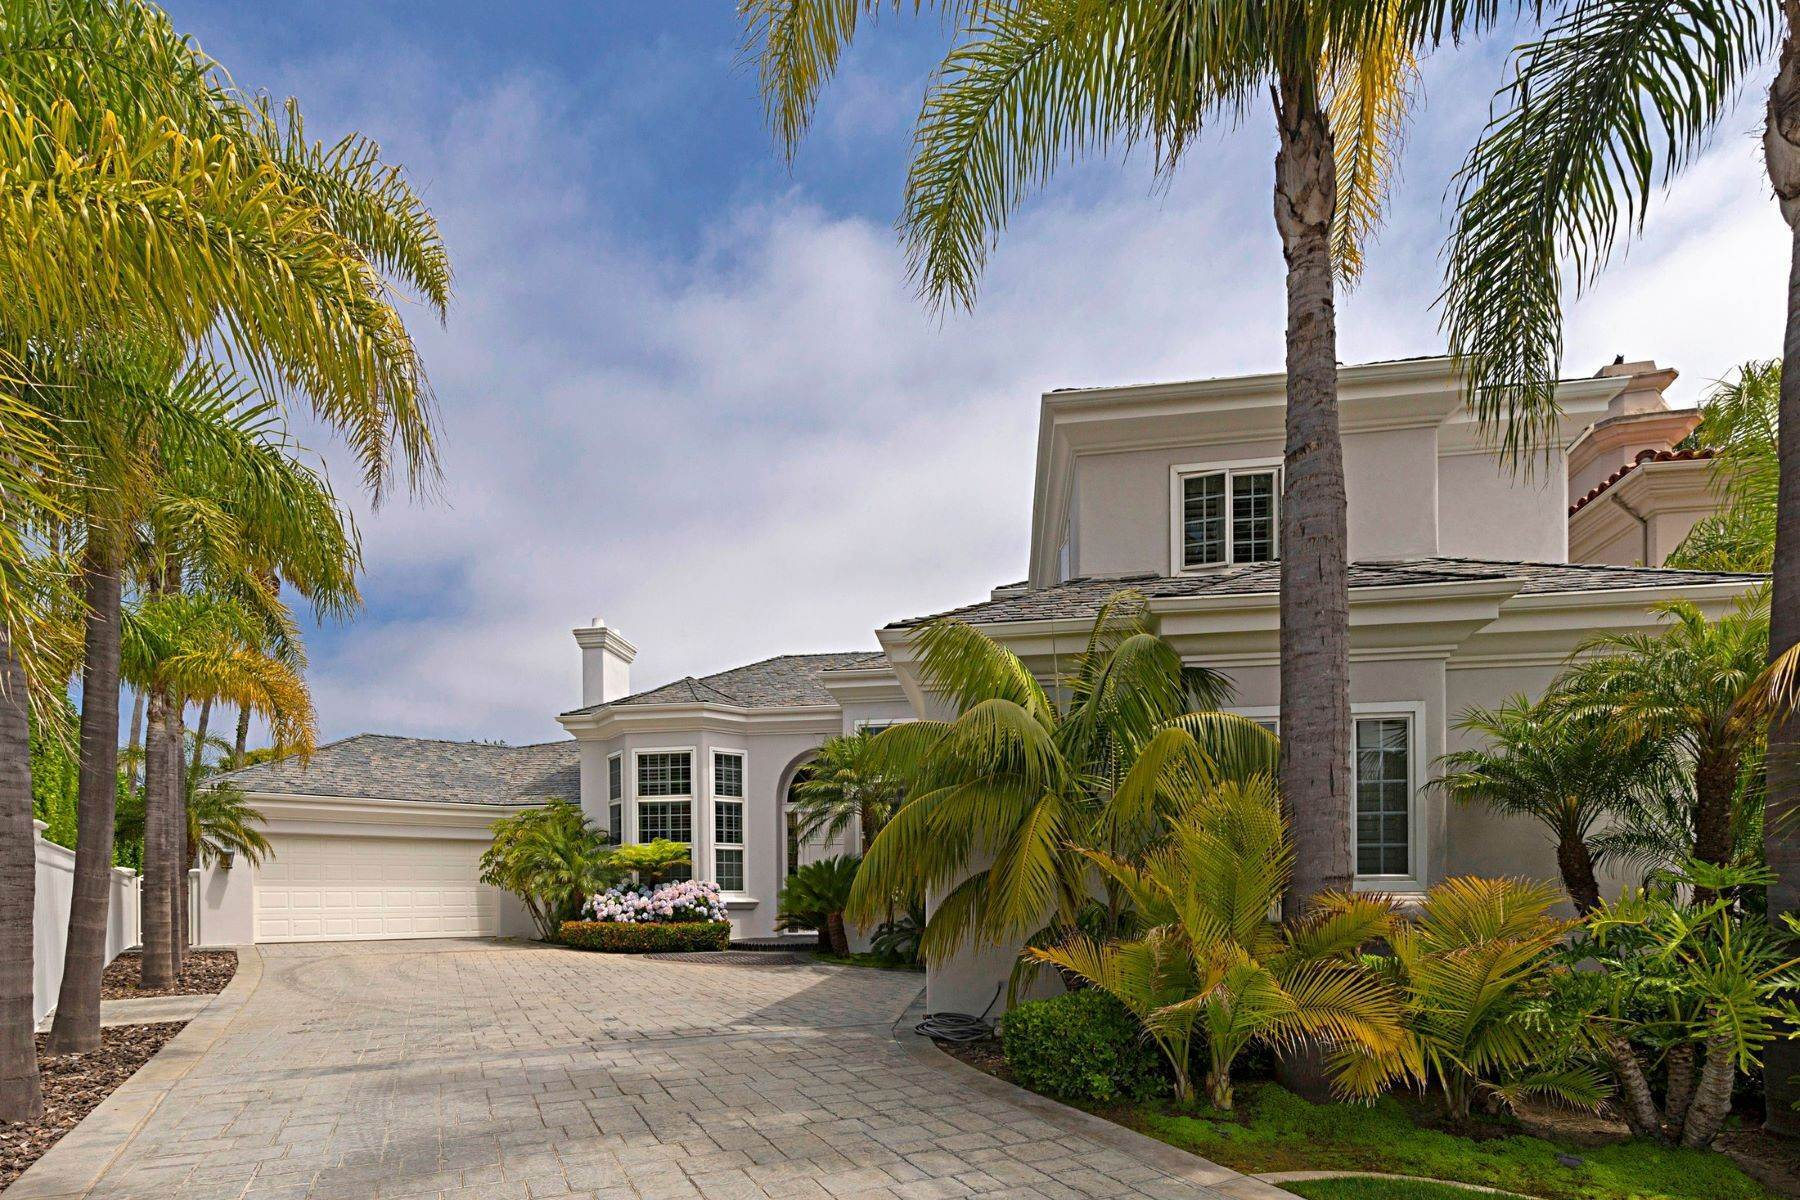 Single Family Homes в 97 Ritz Cove Dr, Dana Point 97 Ritz Cove Dr Dana Point, Калифорния 92629 Соединенные Штаты